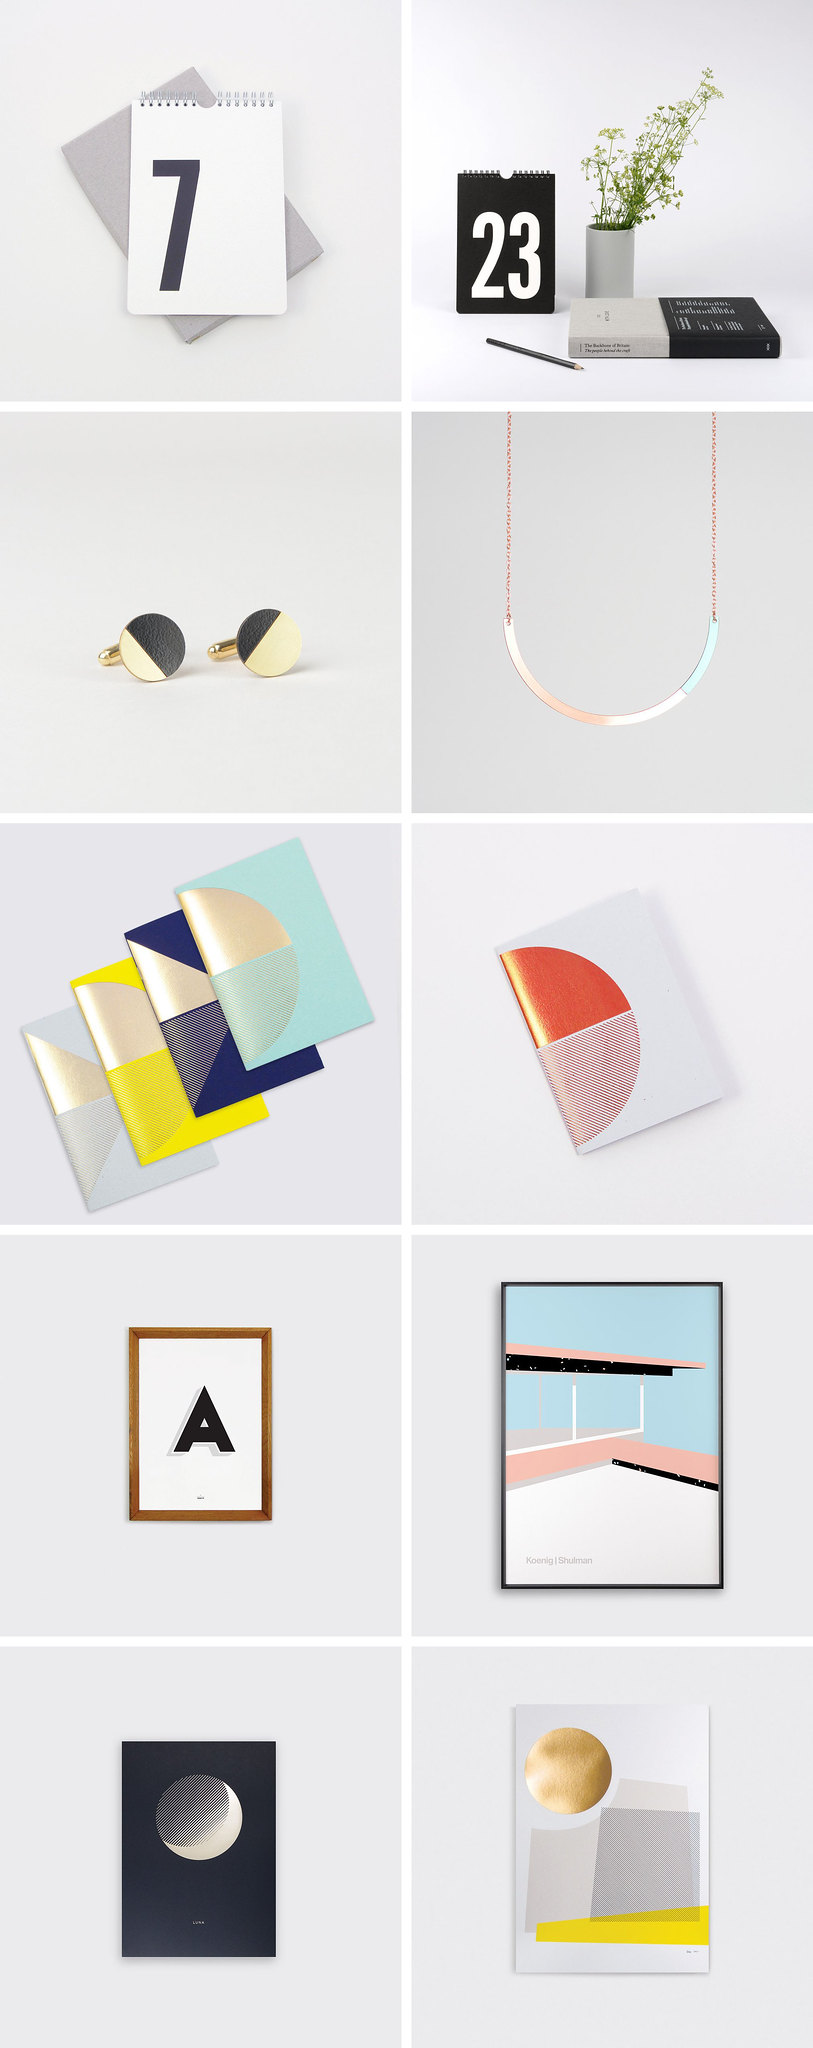 Tom Pigeon - design studio store gifts